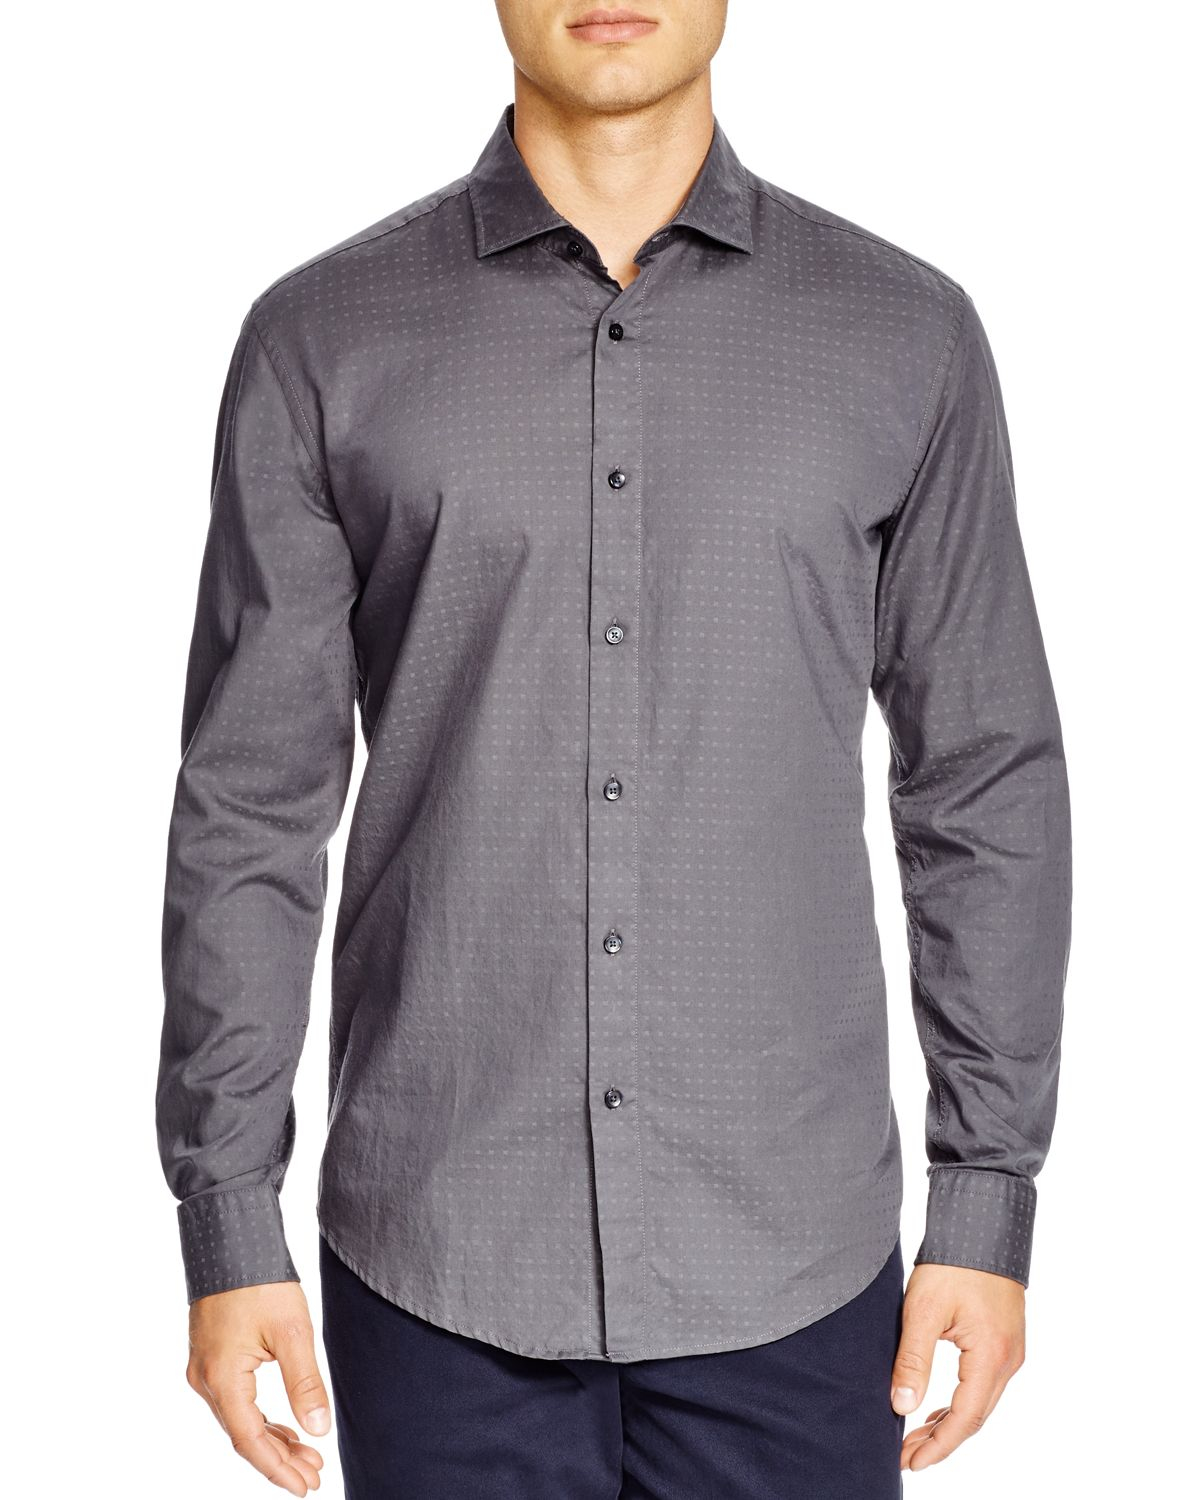 Boss gray boss ridley 2f slim fit button down shirt for Grey button down shirt